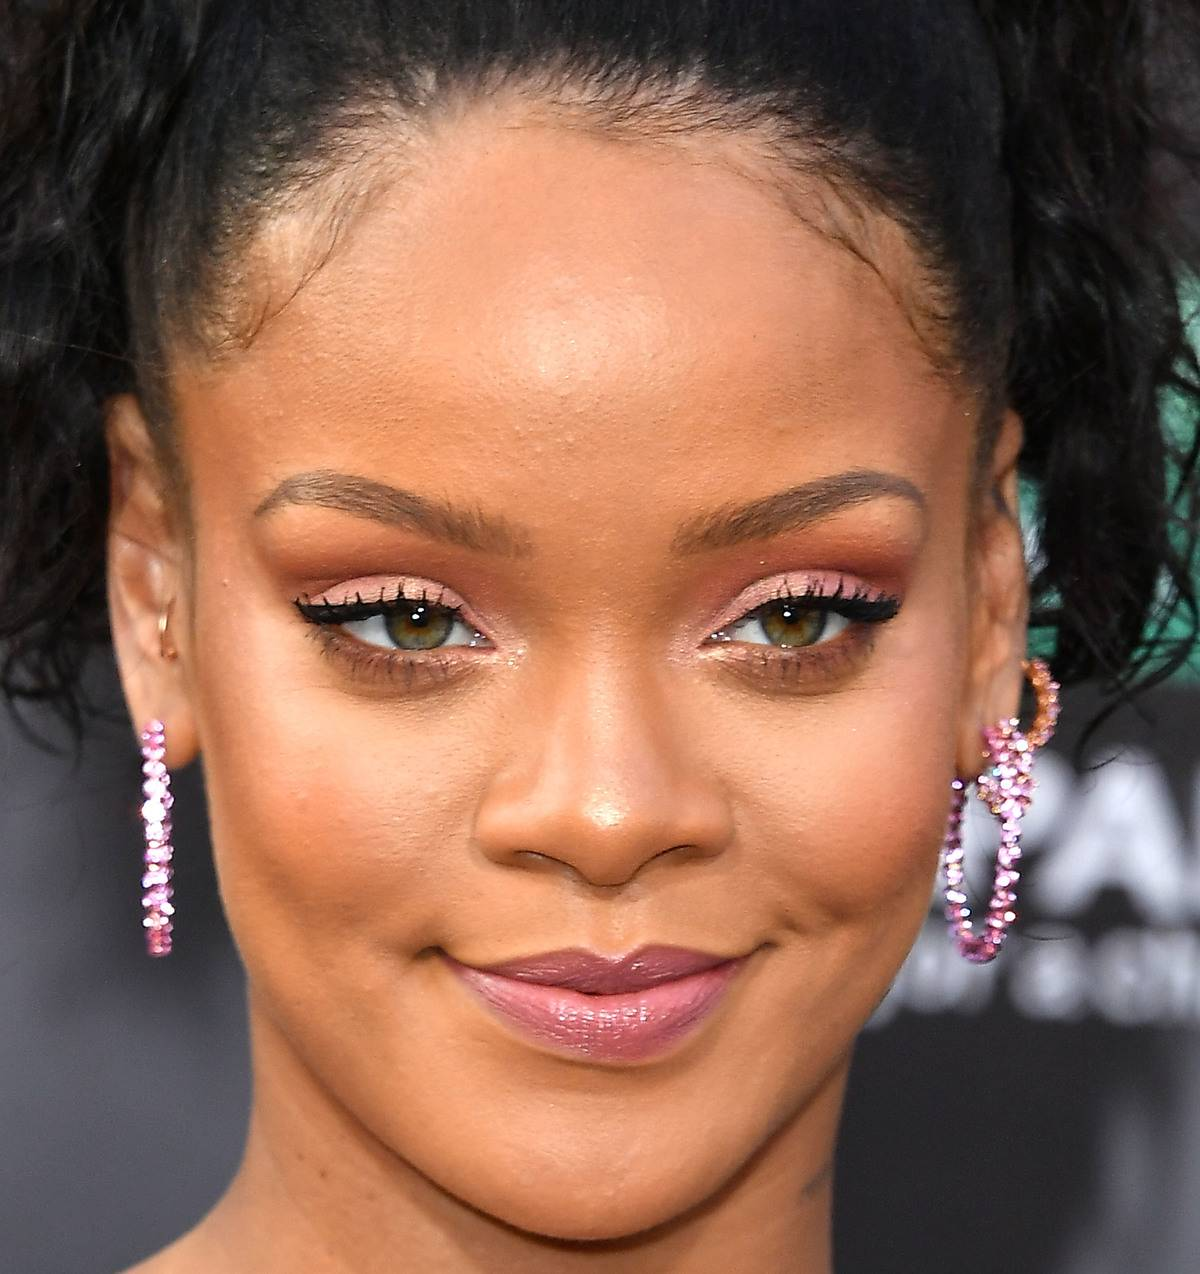 A close-up shows Rihanna's face with makeup on.